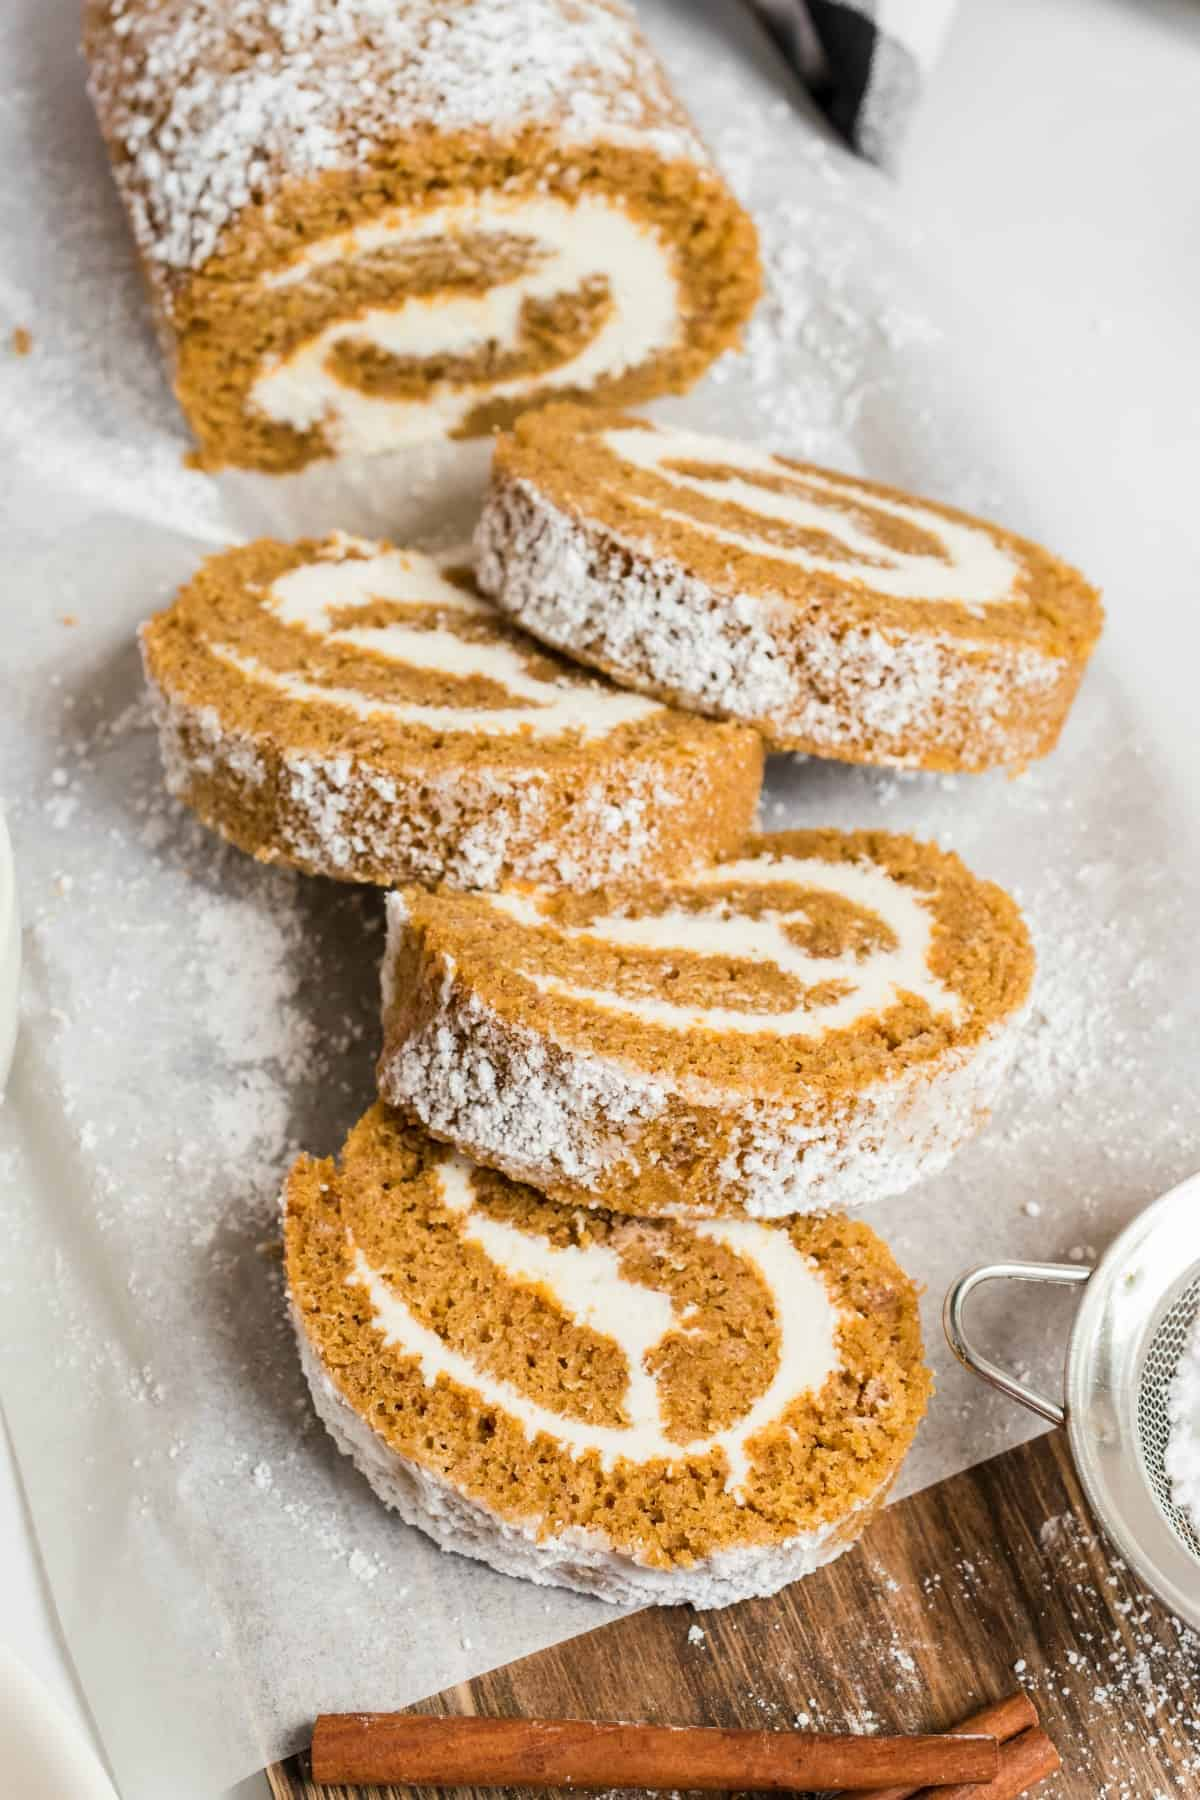 Pumpkin roll slices fanned out on parchment paper, with cream cheese frosting.